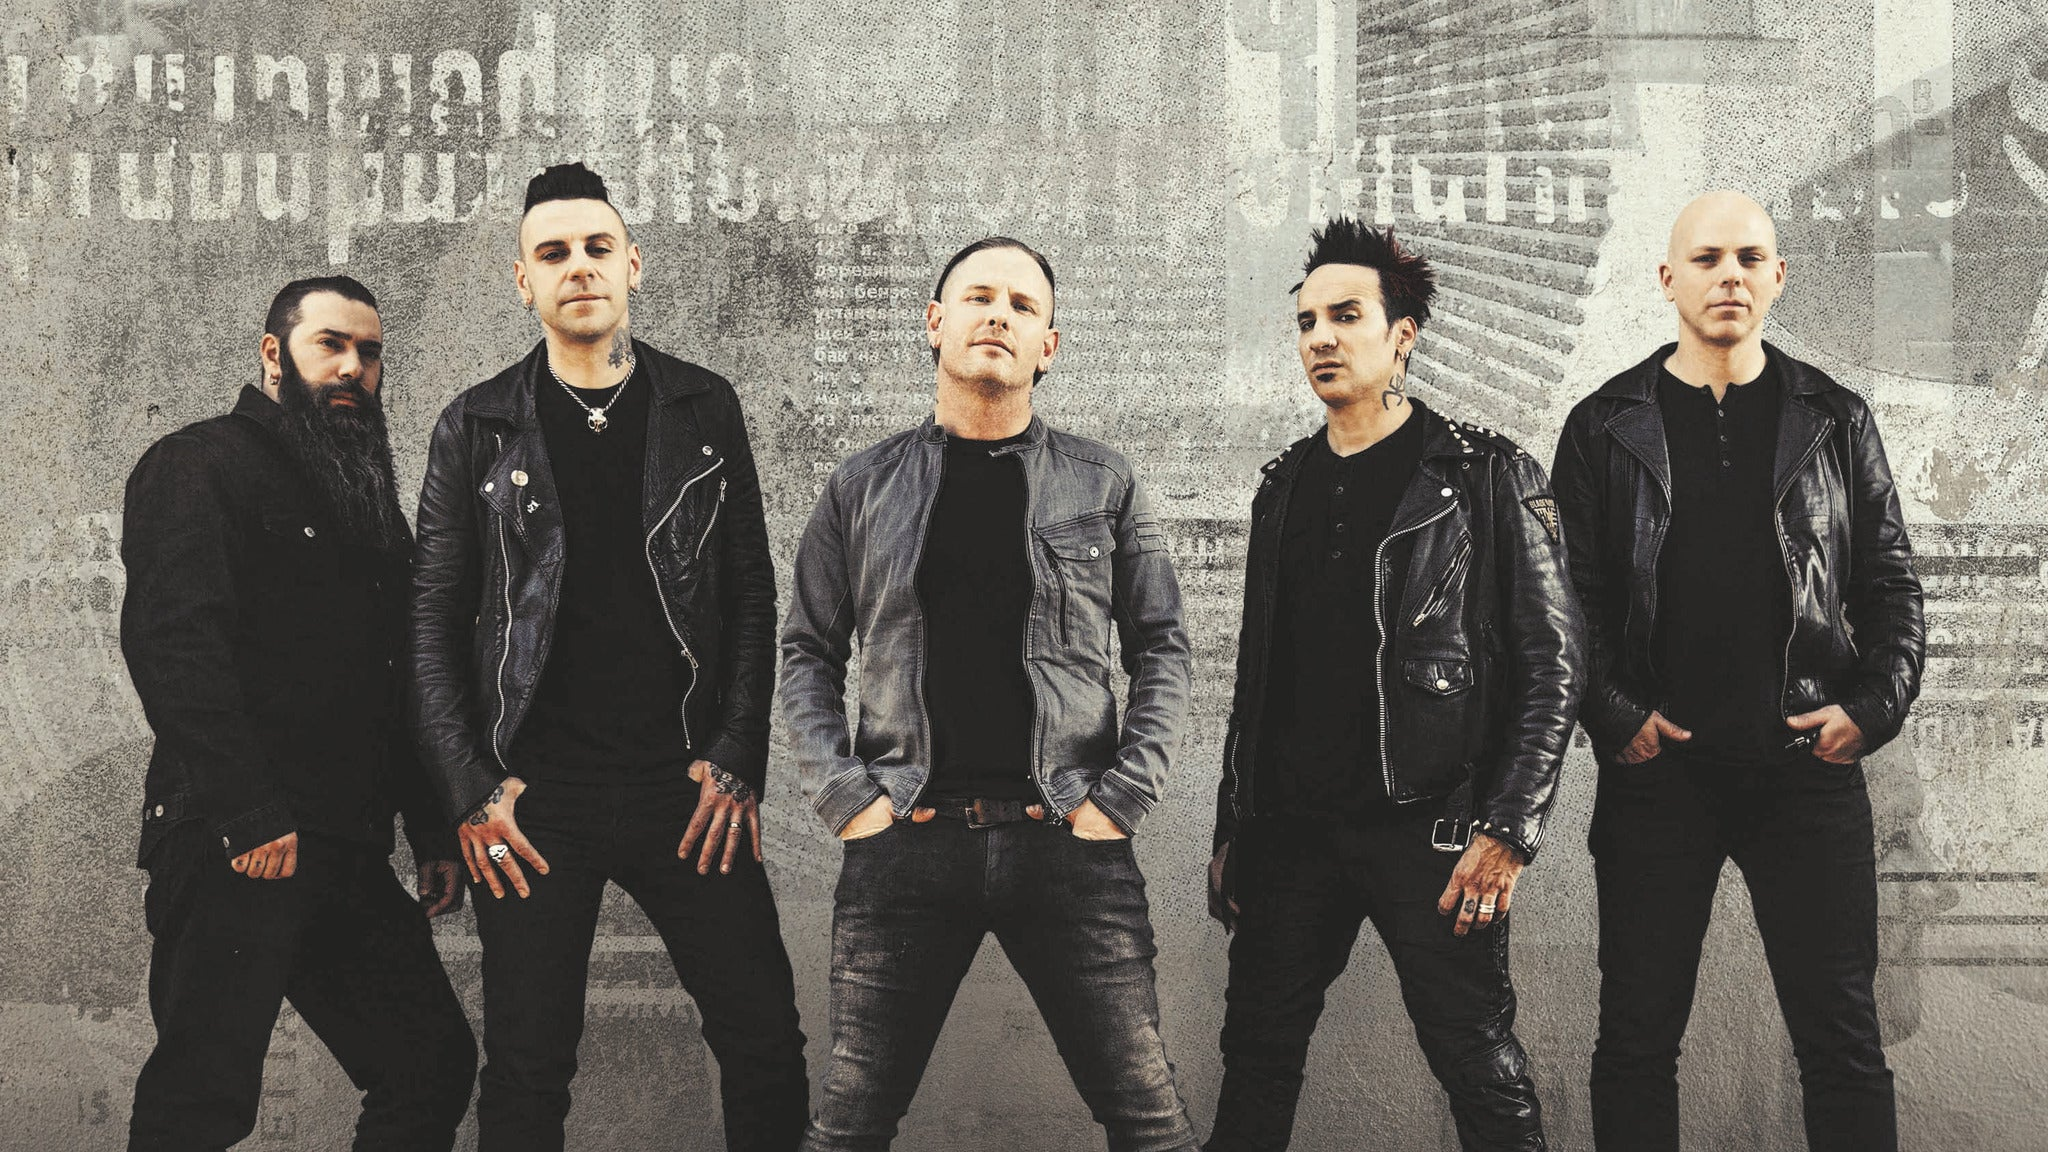 Stone Sour - Upgrade VIP Packages at Shoreline Amphitheatre